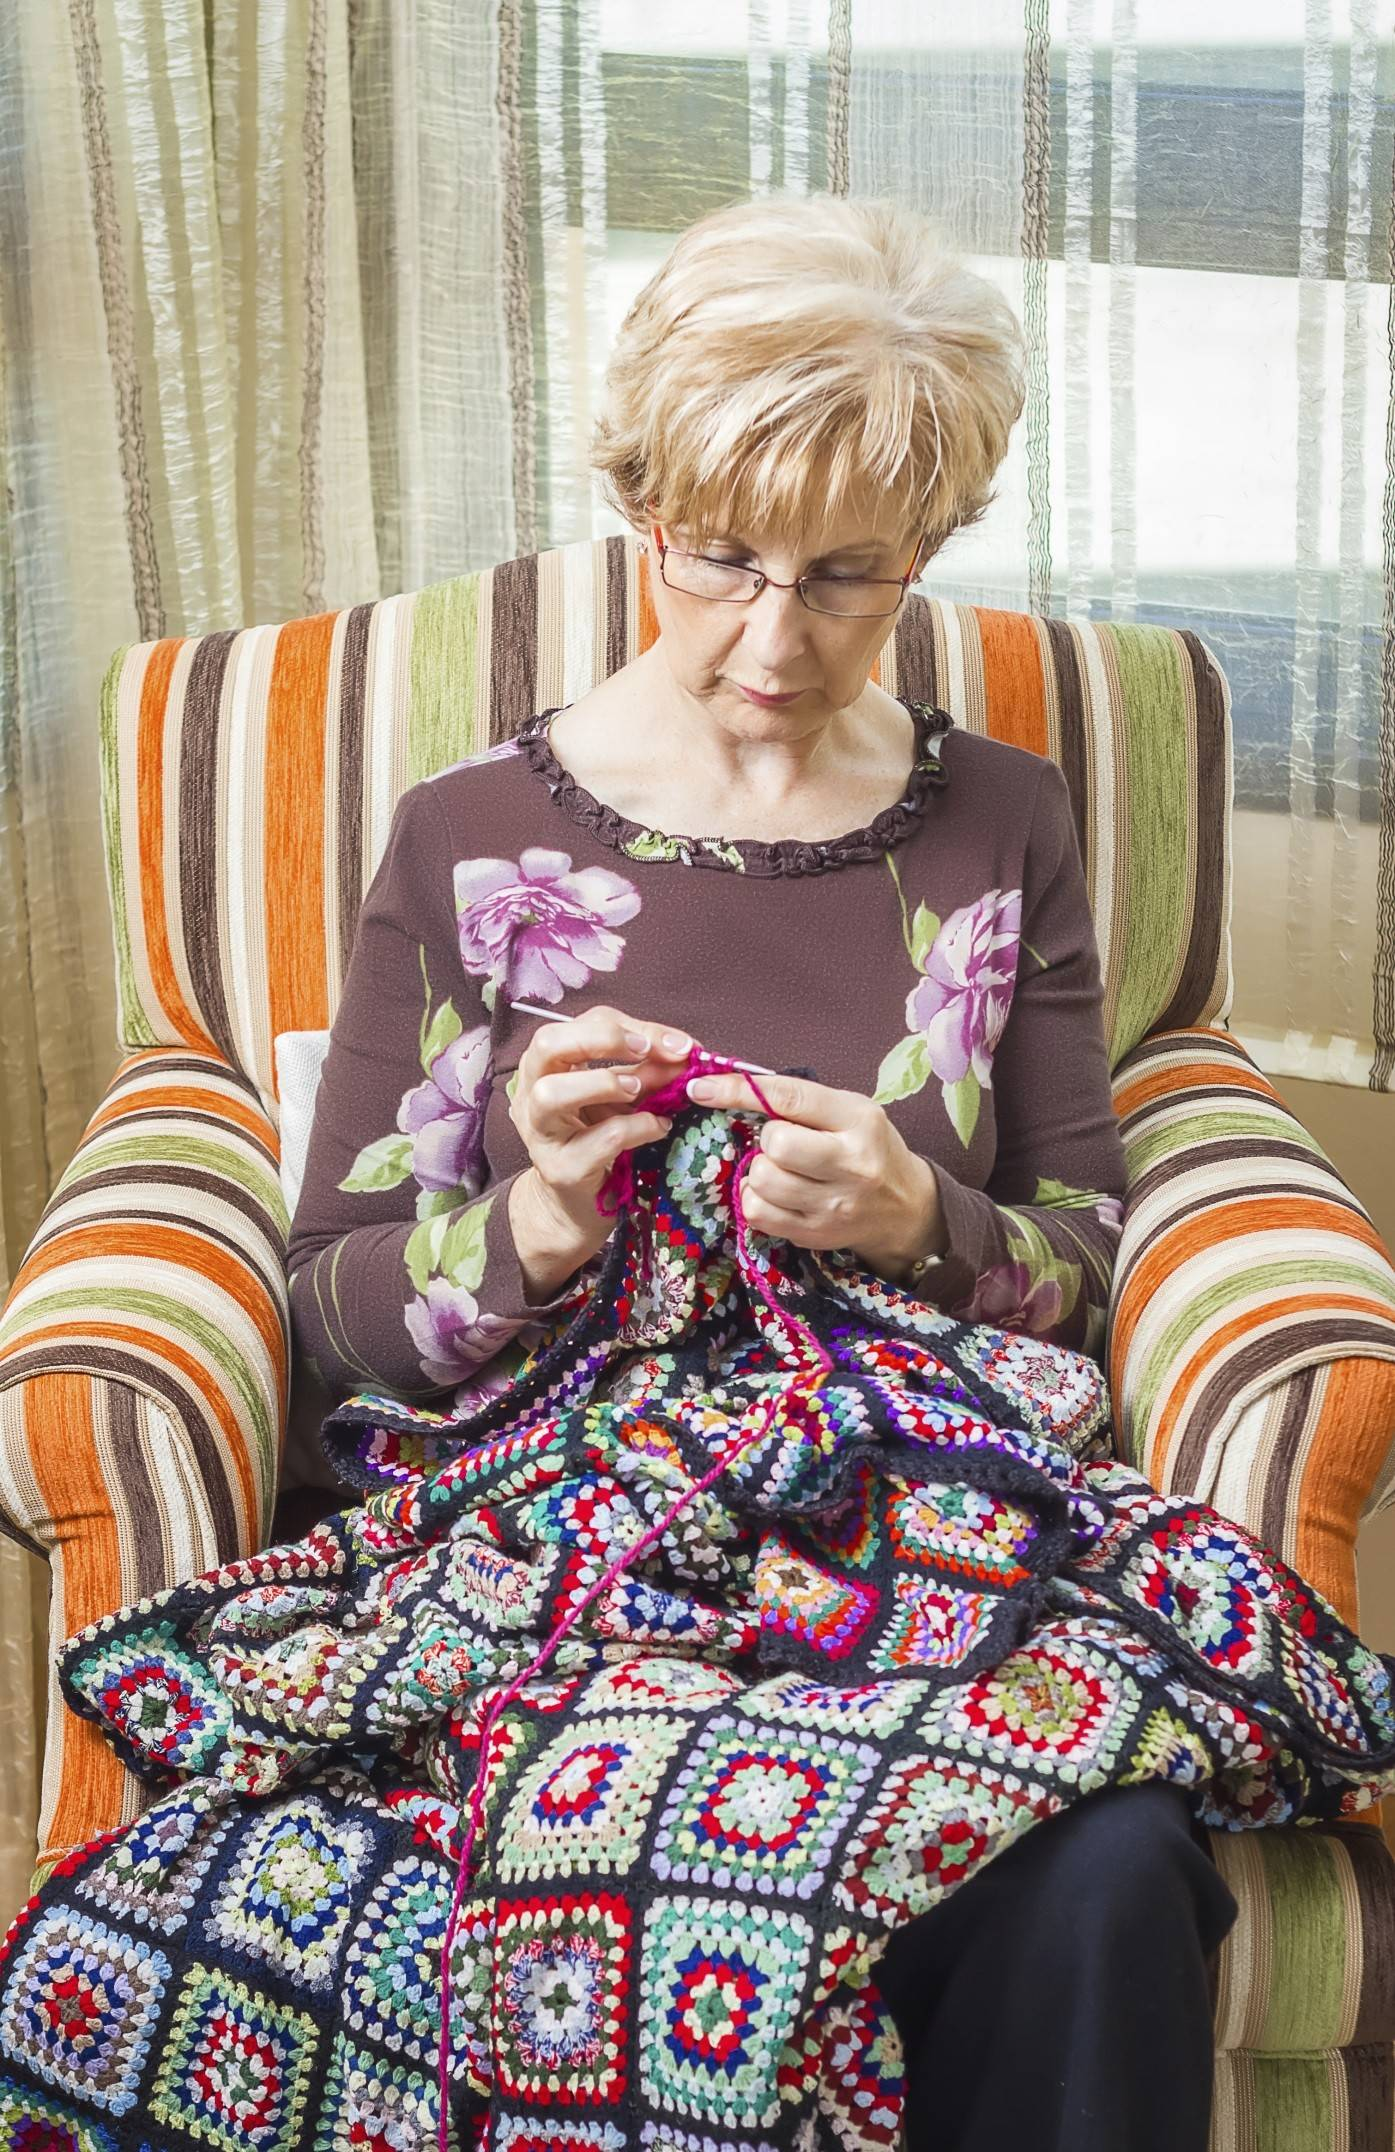 Researchers are beginning to understand the neurological basis for why activities such as knitting are good for the mind.